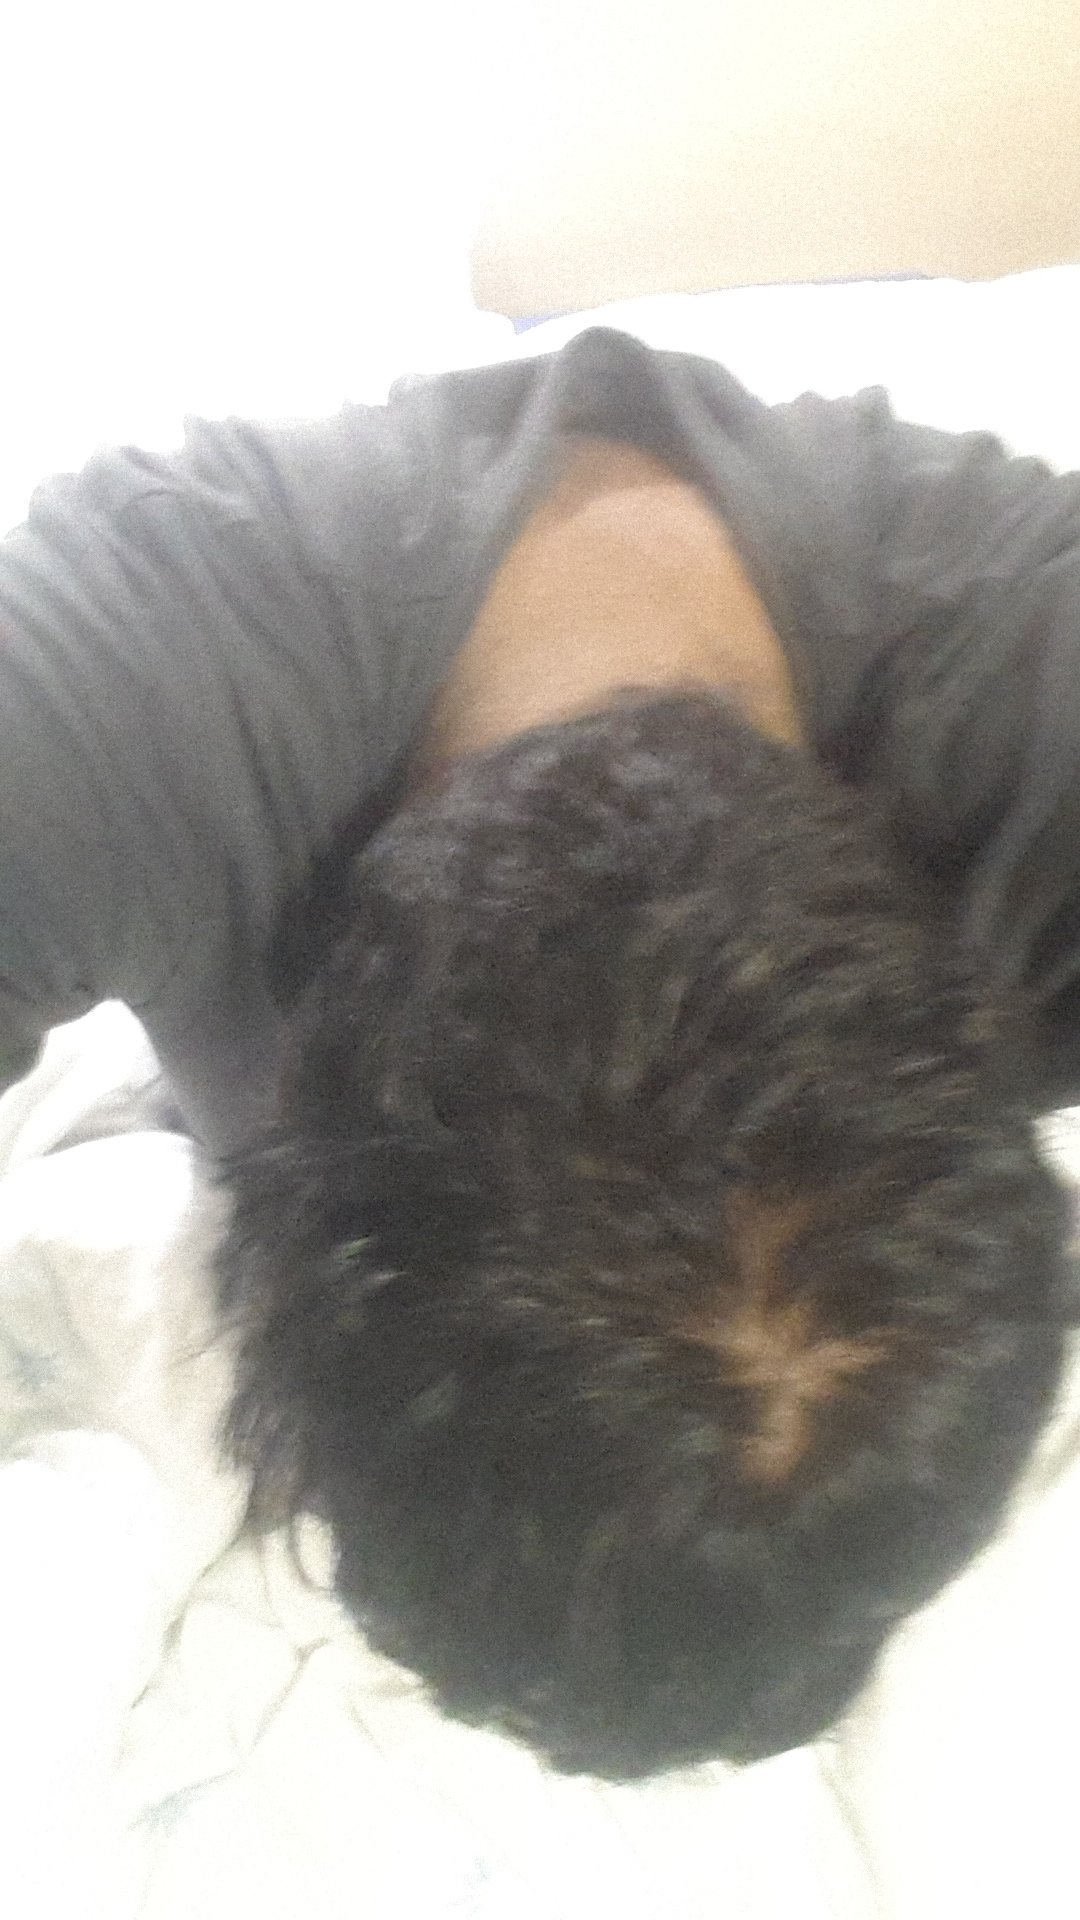 Male 18 Is My Crown Thinning Or Is This Just A Natural Hair Whorl